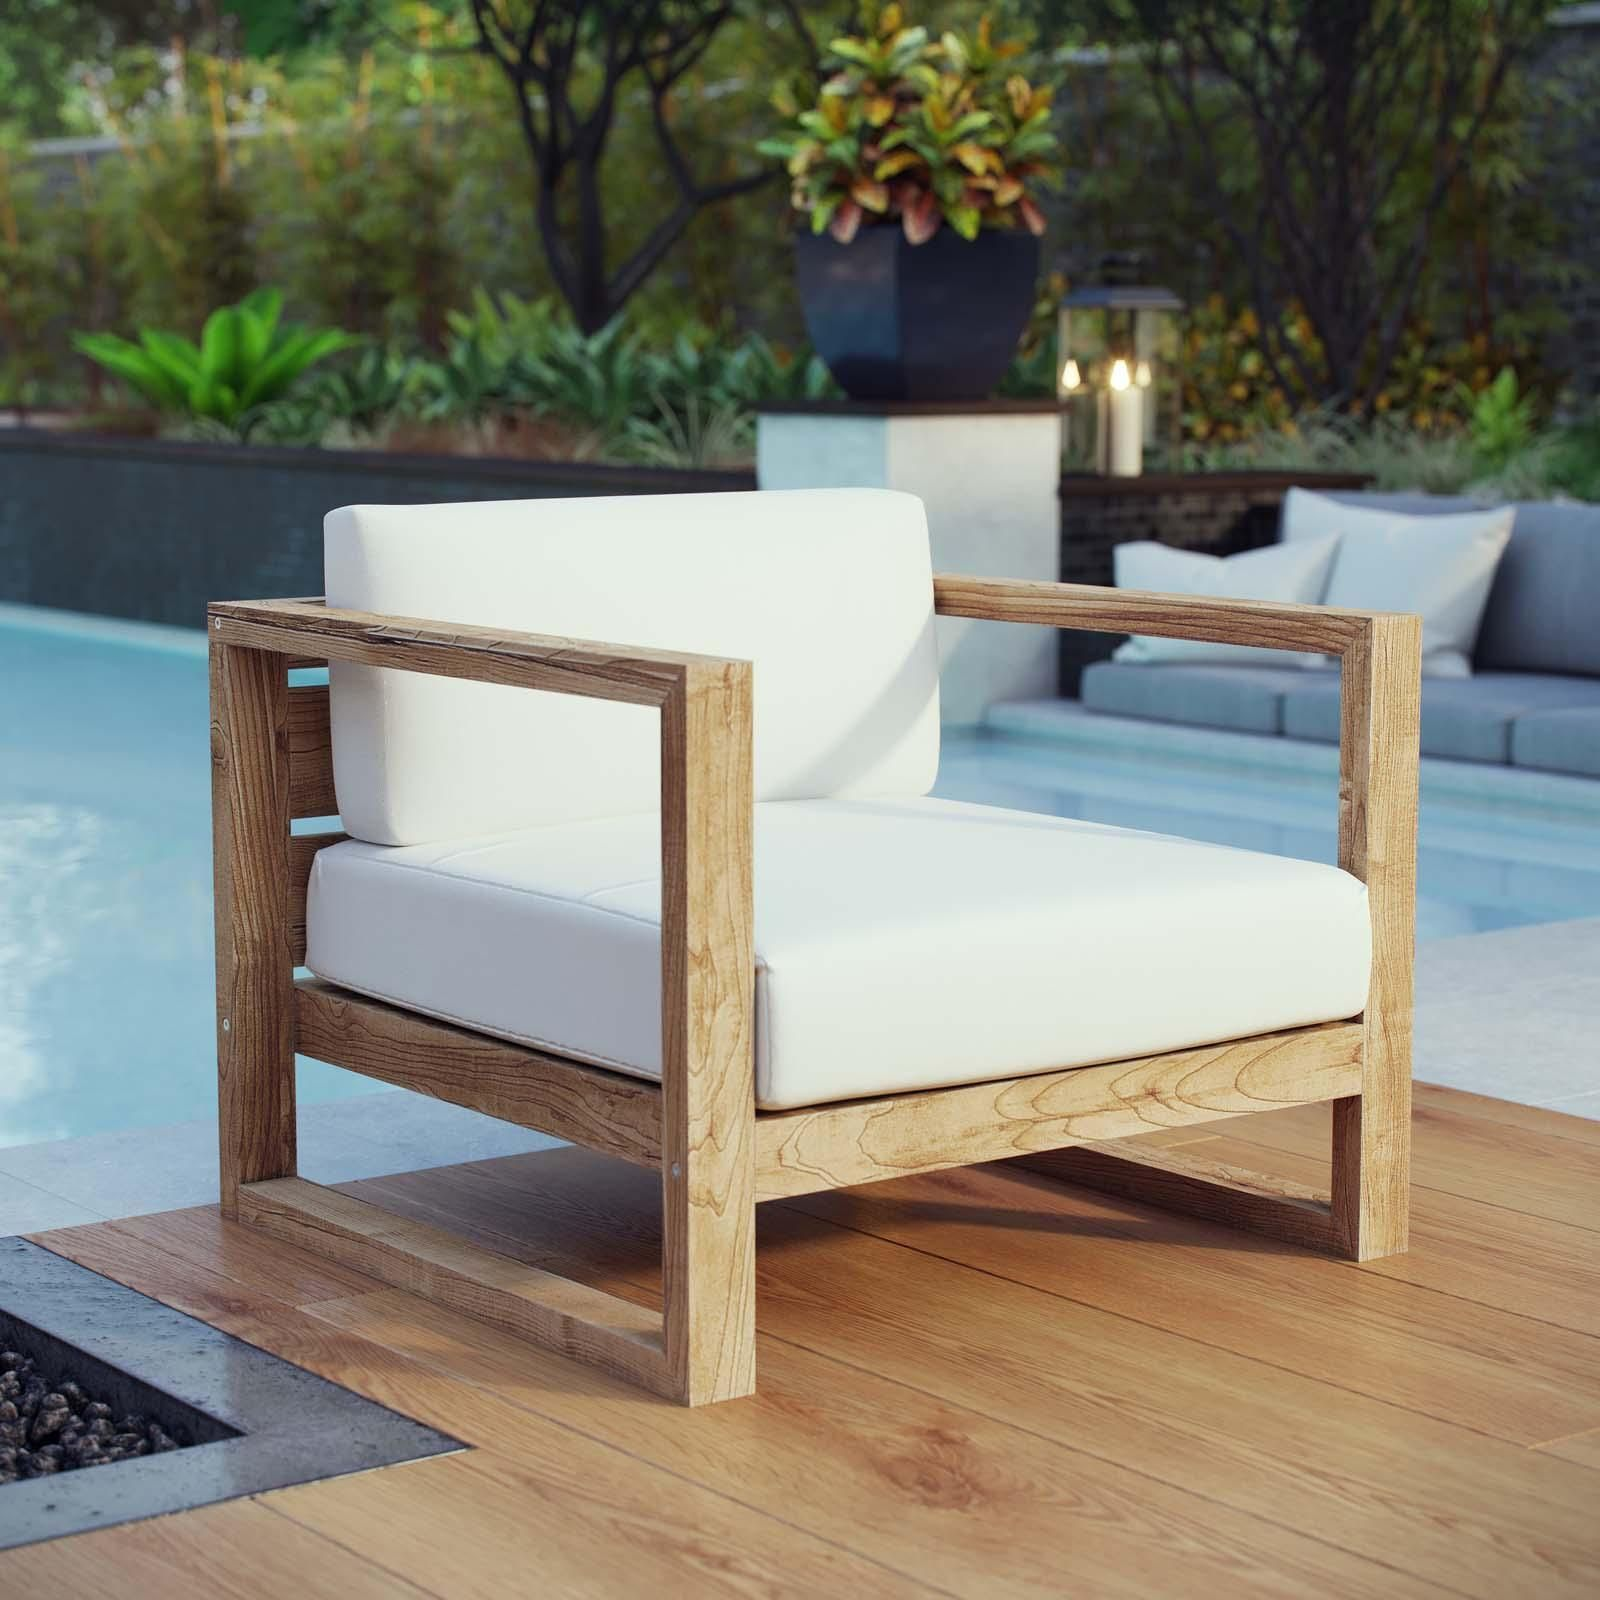 Refresh Your Outdoor Decor With The Upland Teak Outdoor Collection Boldly Designed With Eye Ca Outdoor Patio Decor Teak Patio Furniture Teak Outdoor Furniture